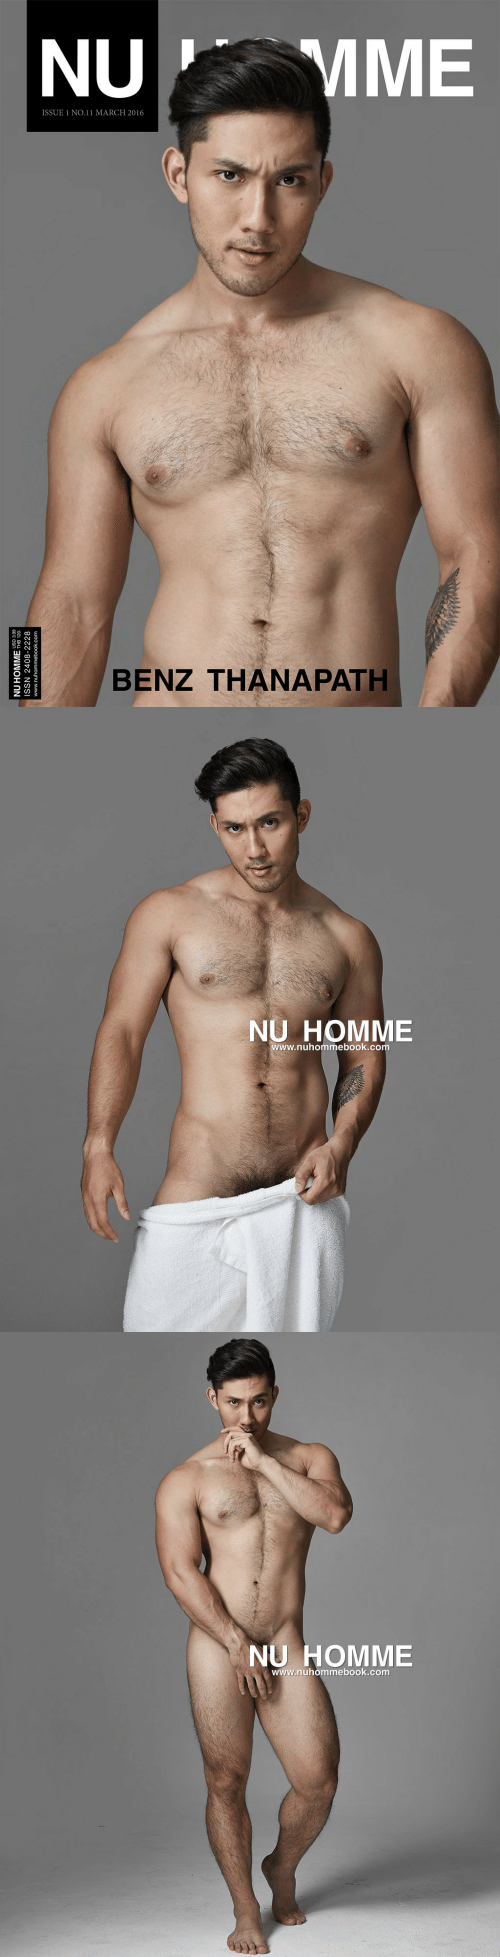 march: MME  NU  ISSUE 1 NO.11 MARCH 2016  BENZ THANAPATH  NU HOMME HB 120  ISSN 2408-2228  www.nuhommebook.com   NU HOMME  www.nuhommebook.com   NU HOMME  www.nuhommebook.com